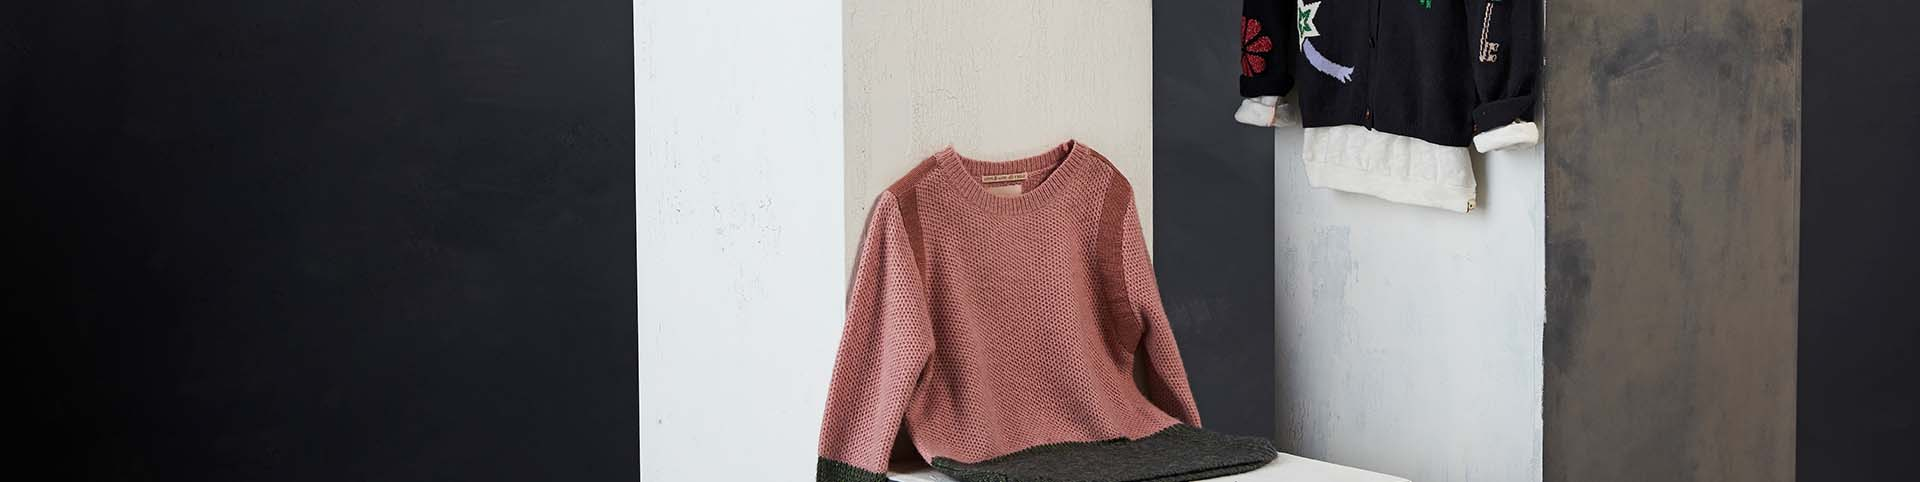 Girls' Pullovers & Cardigans